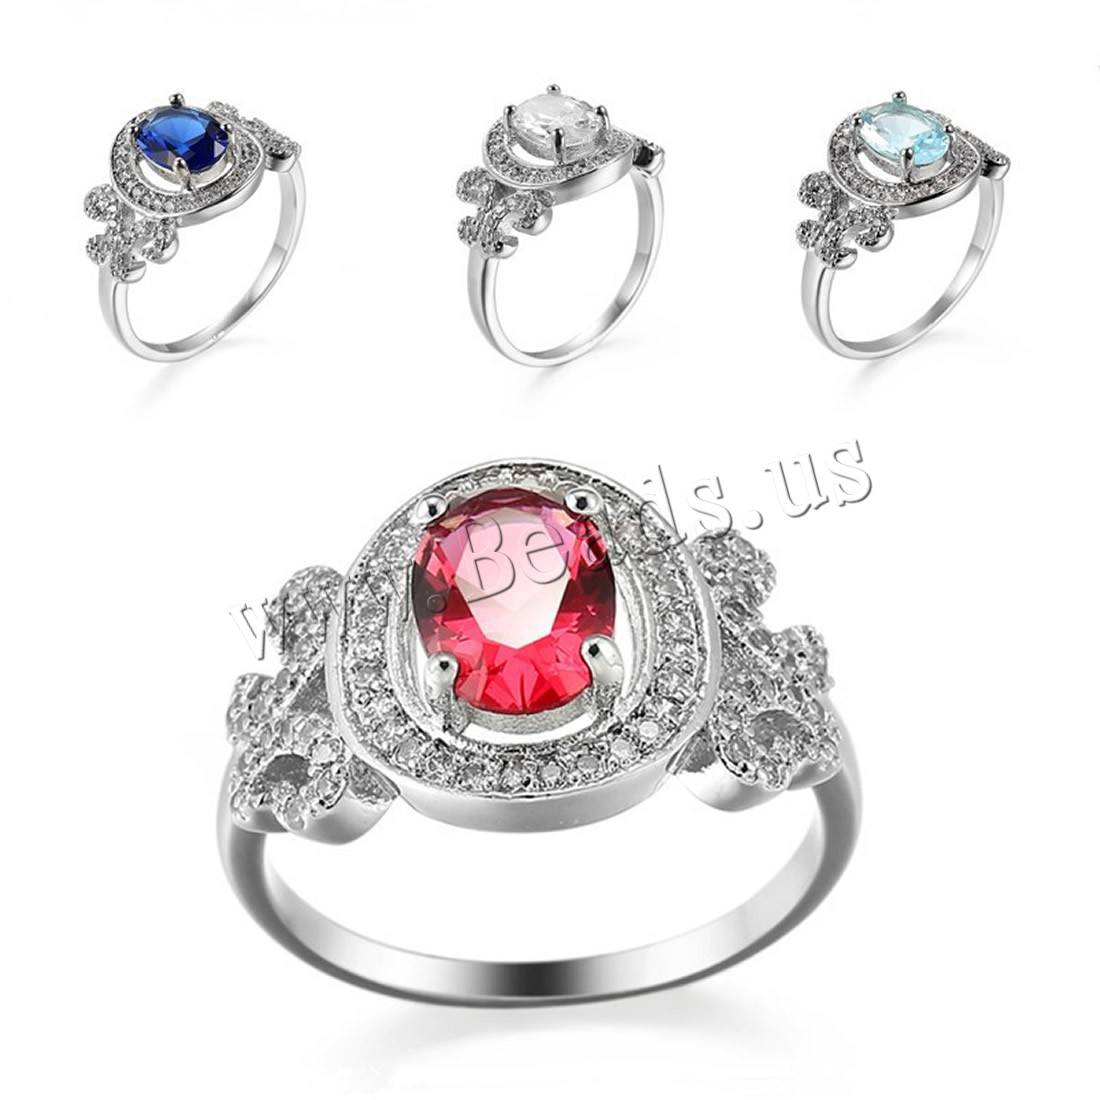 Buy Cubic Zircon Brass Finger Ring platinum plated Unisex & different size choice & cubic zirconia colors choice nickel lead & cadmium free Sold PC